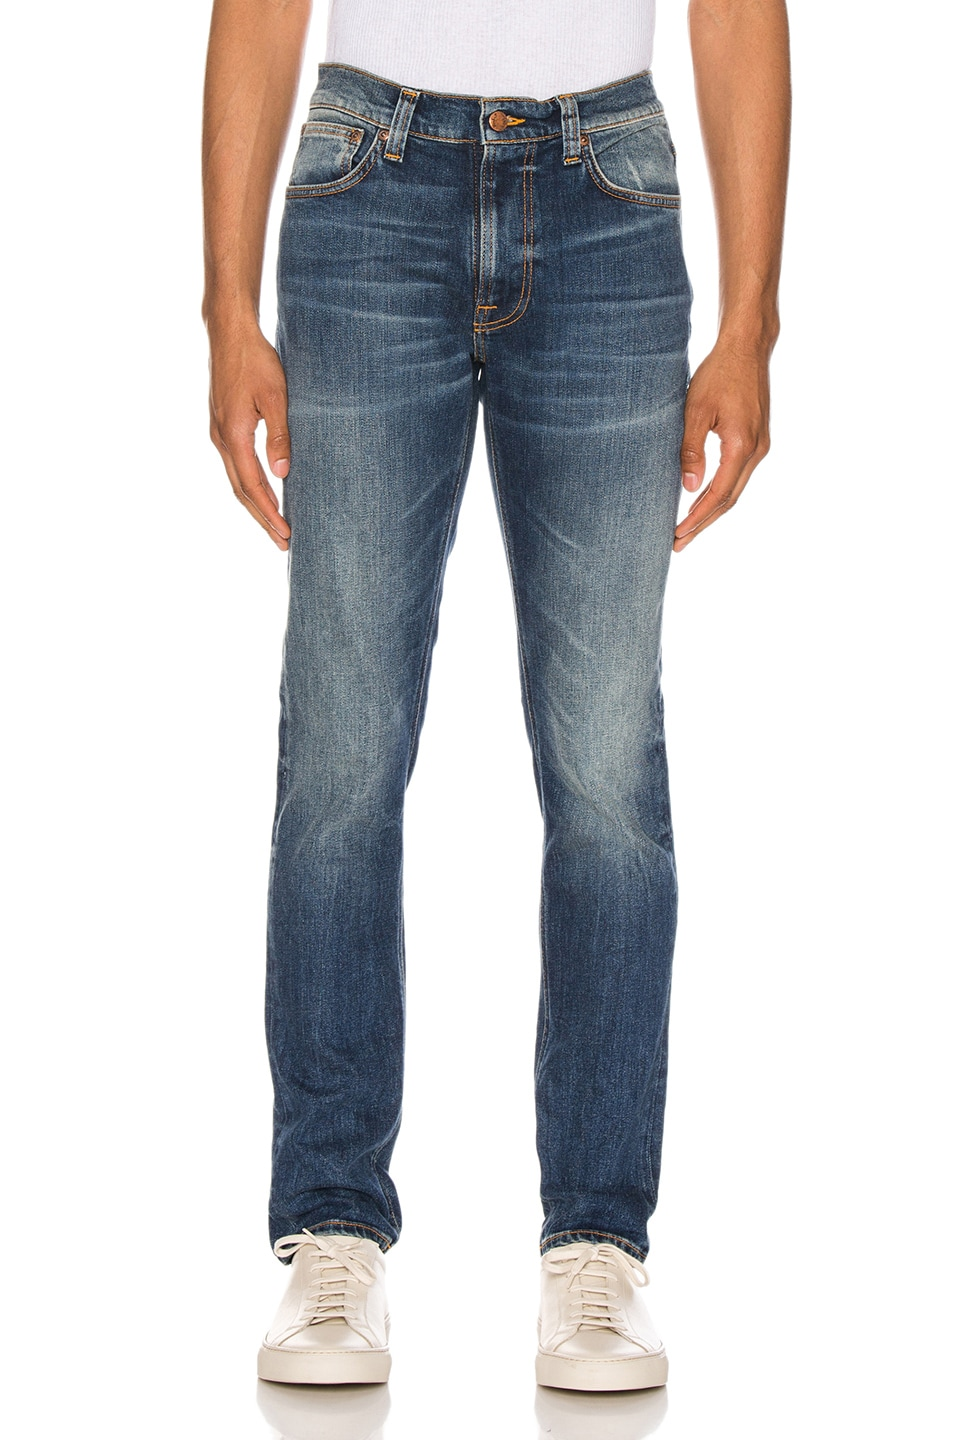 Image 1 of Nudie Jeans Lean Dean in Indigo Shades